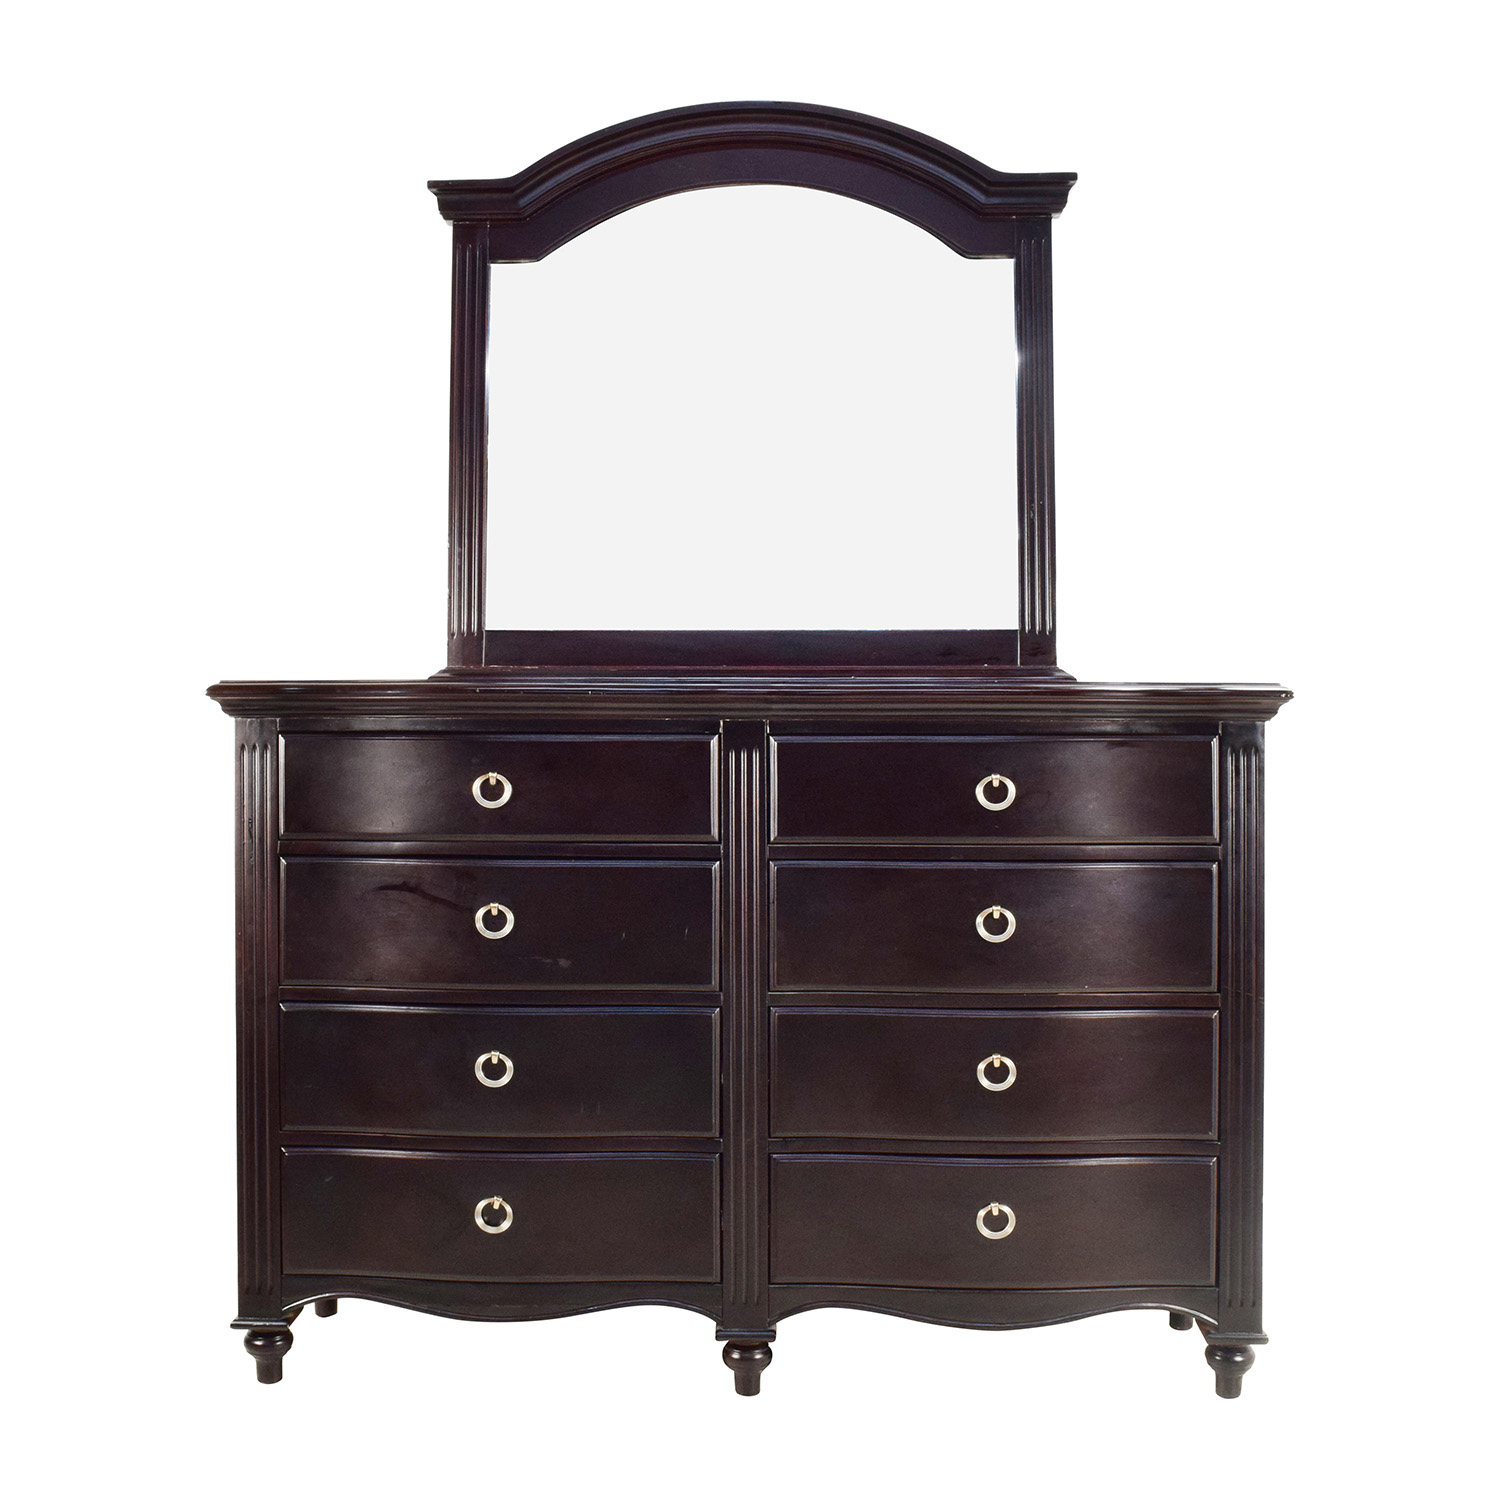 shop Mahogany 10-Drawer Dresser Dressers